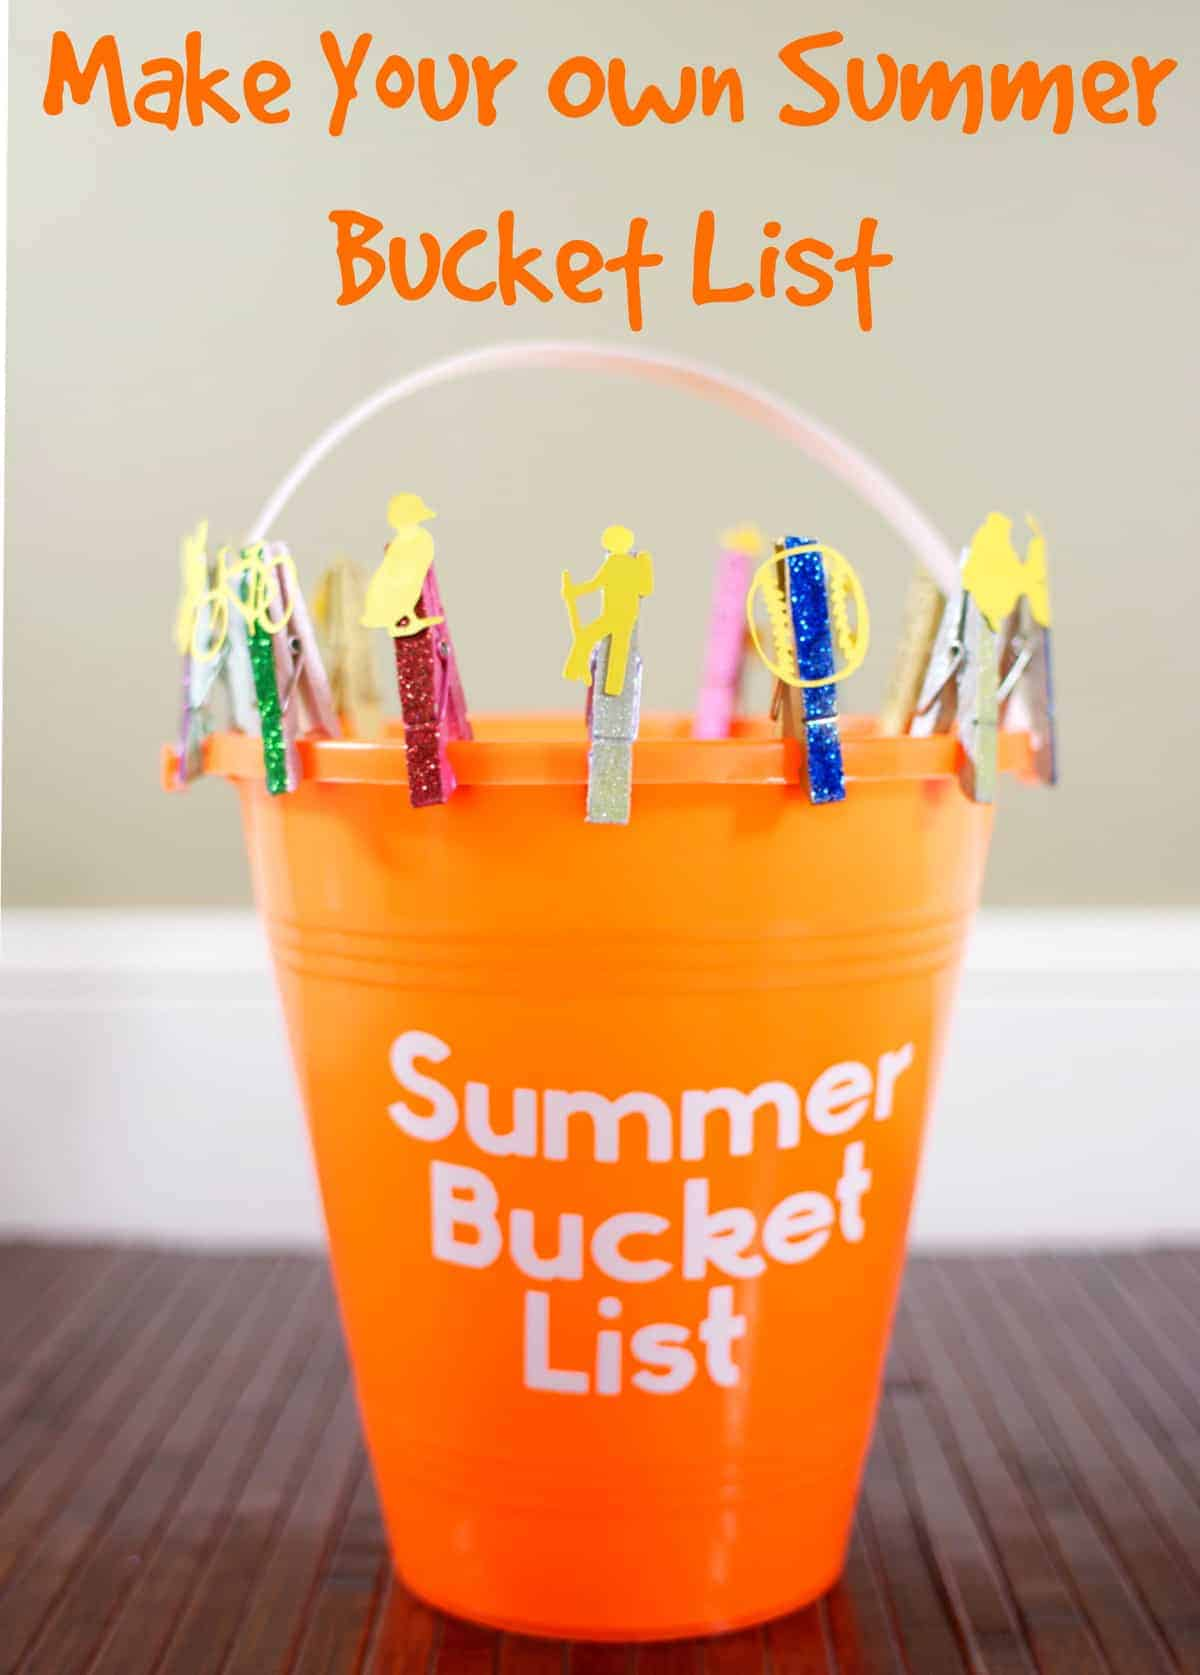 Make Your Own Pier 1 Rope Lamp Knock Off: Make Your Own Summer Bucket List -50 Fun Summer Activities